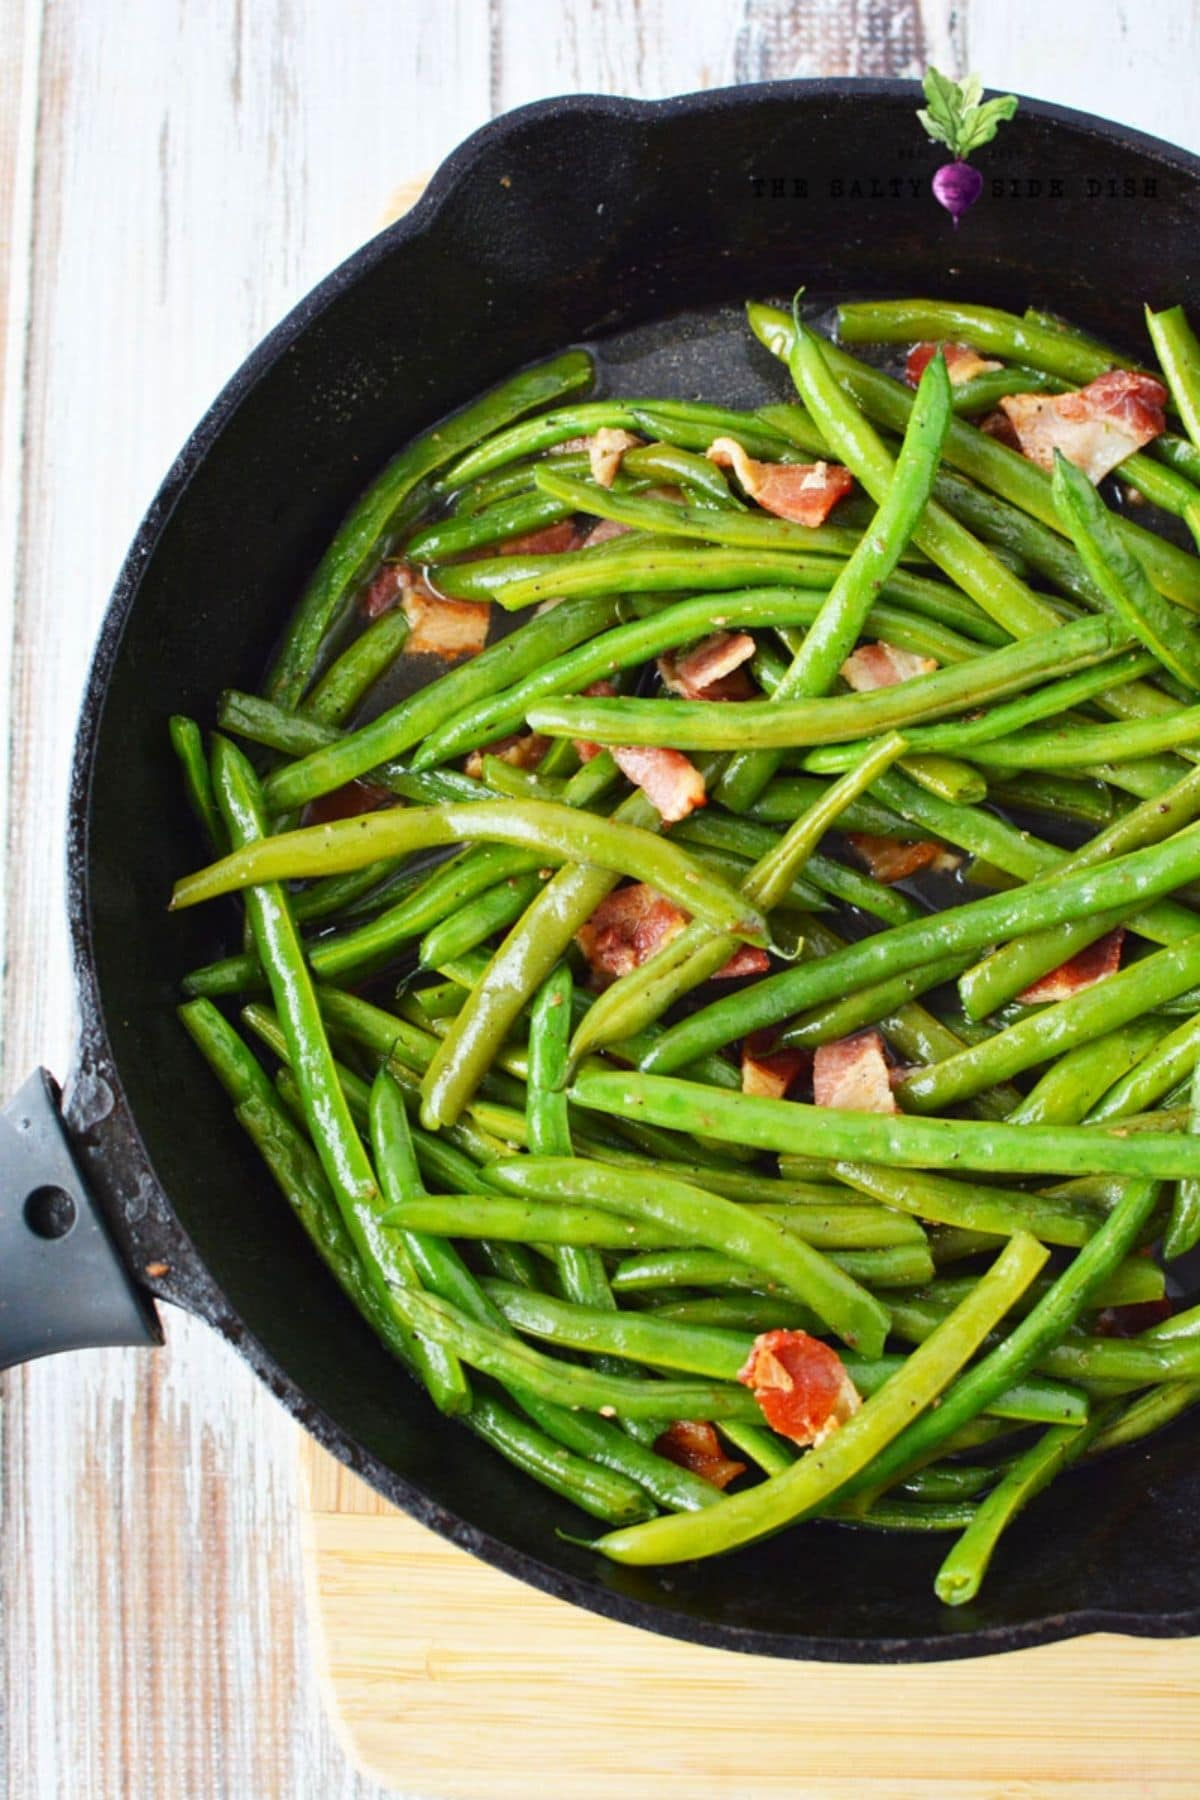 cooking fresh green beans in a cast iron pan